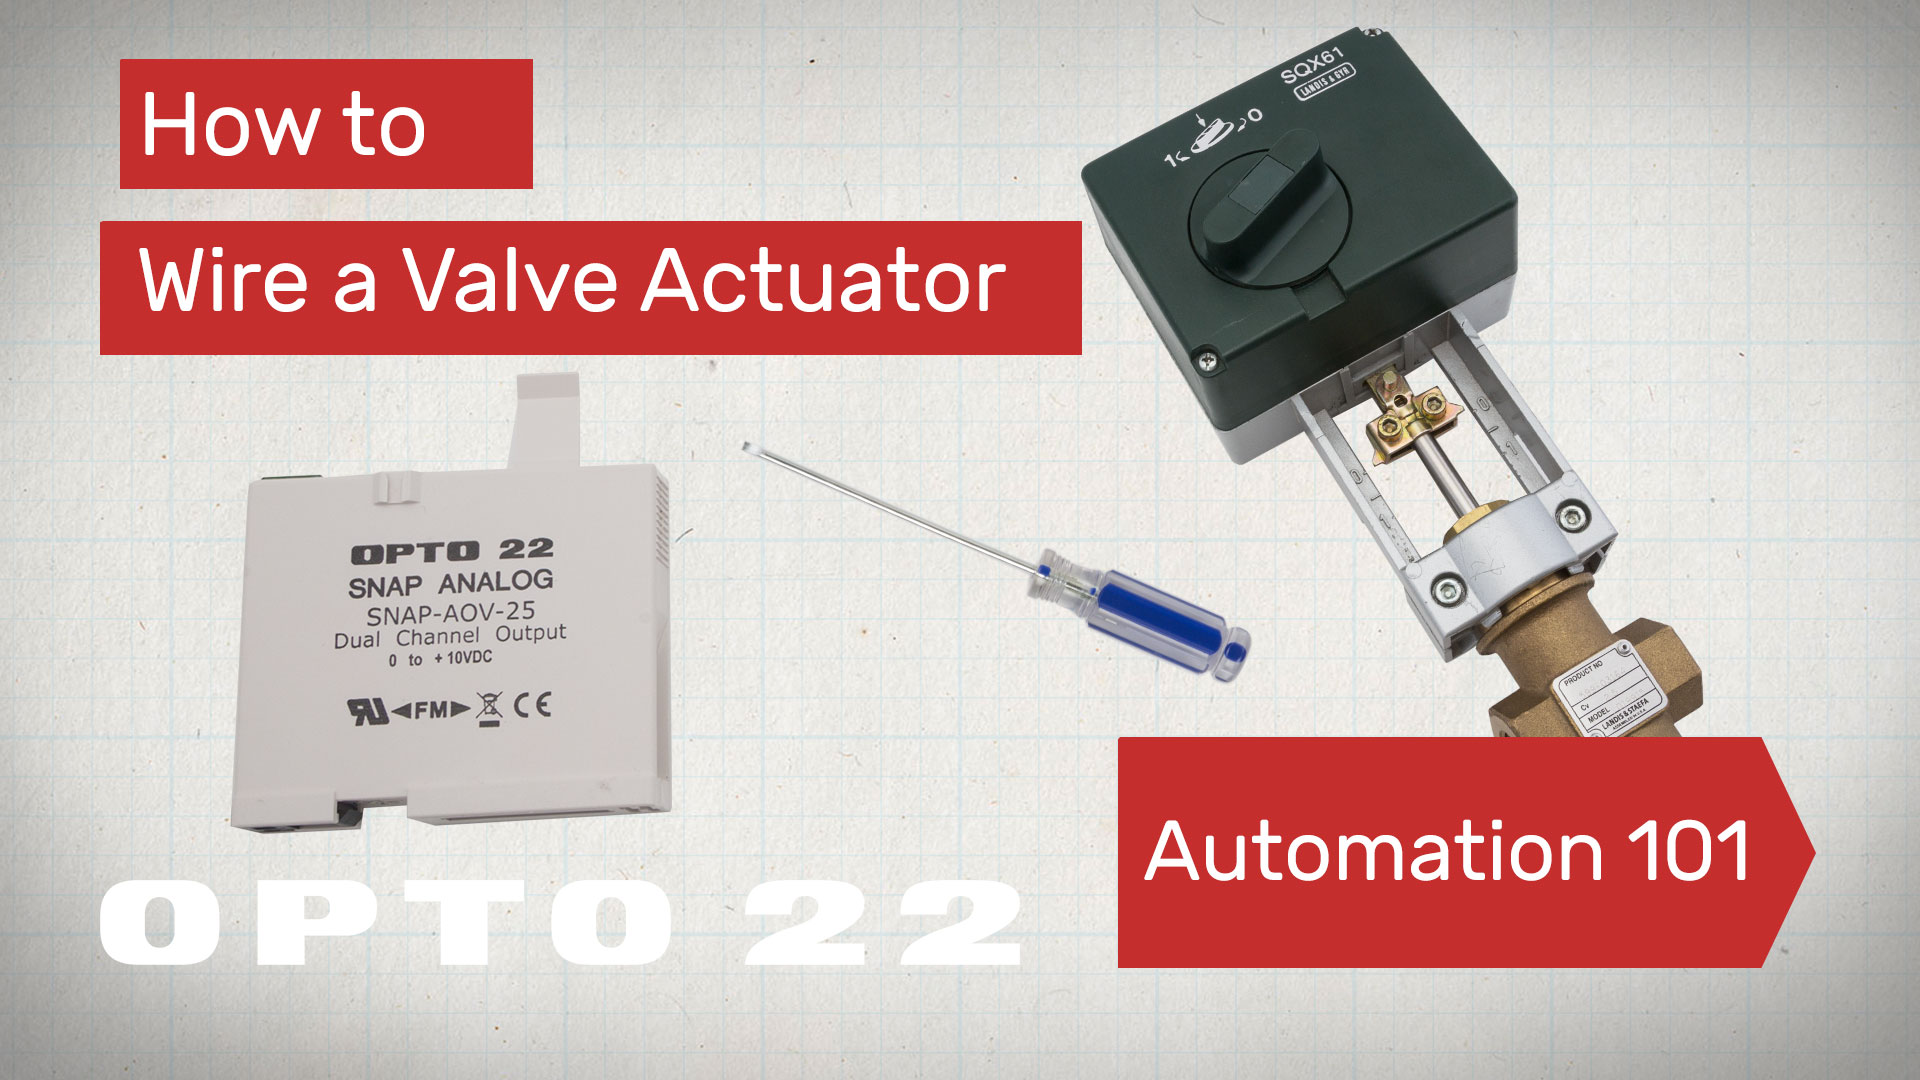 Opto 22 Wiring Diagram Schematic Diagrams Rj31x Wire A Valve Actuator Automation 101 Video